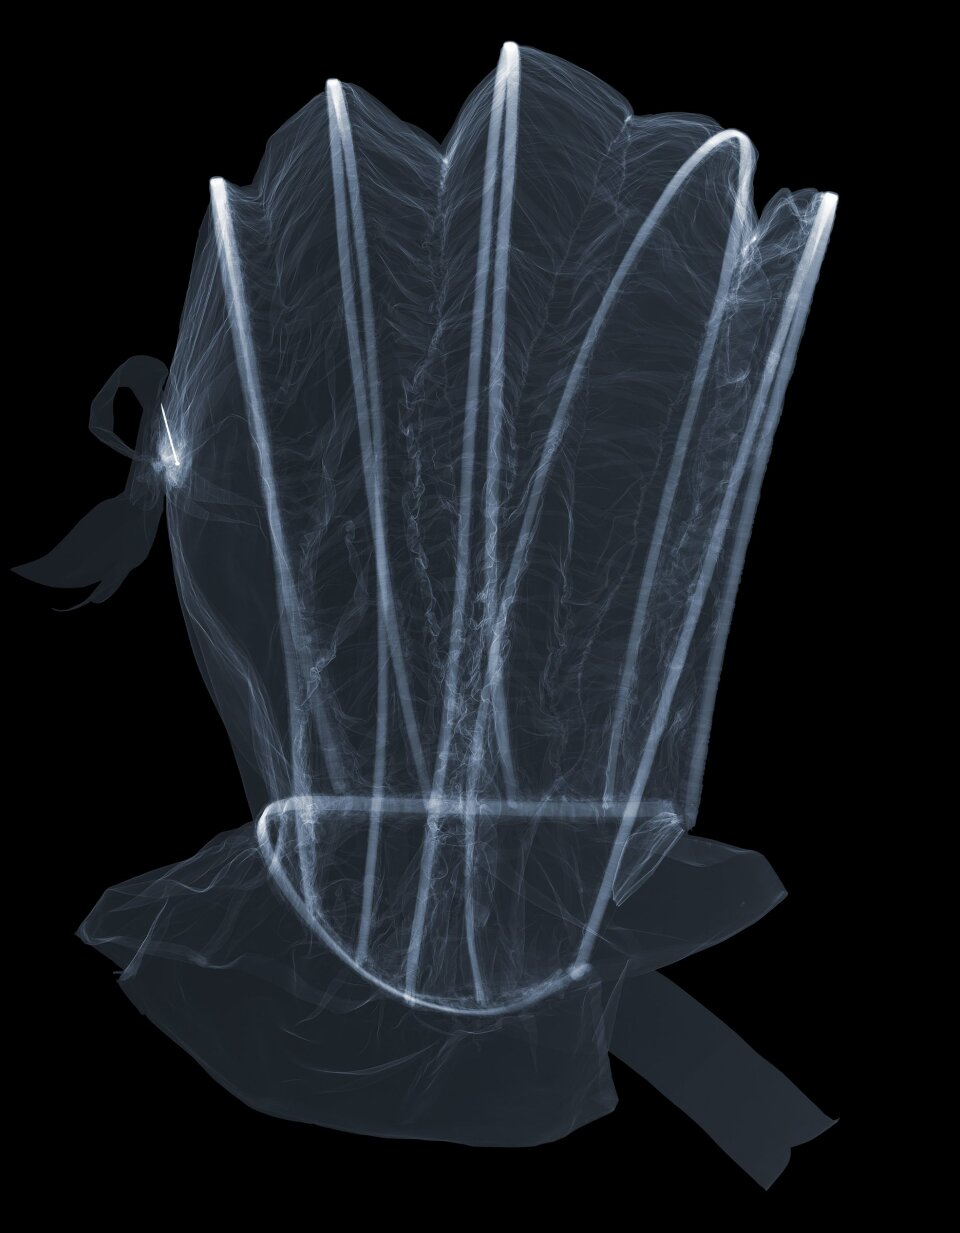 X-ray of calash. Photography by Nick Veasey, 2017